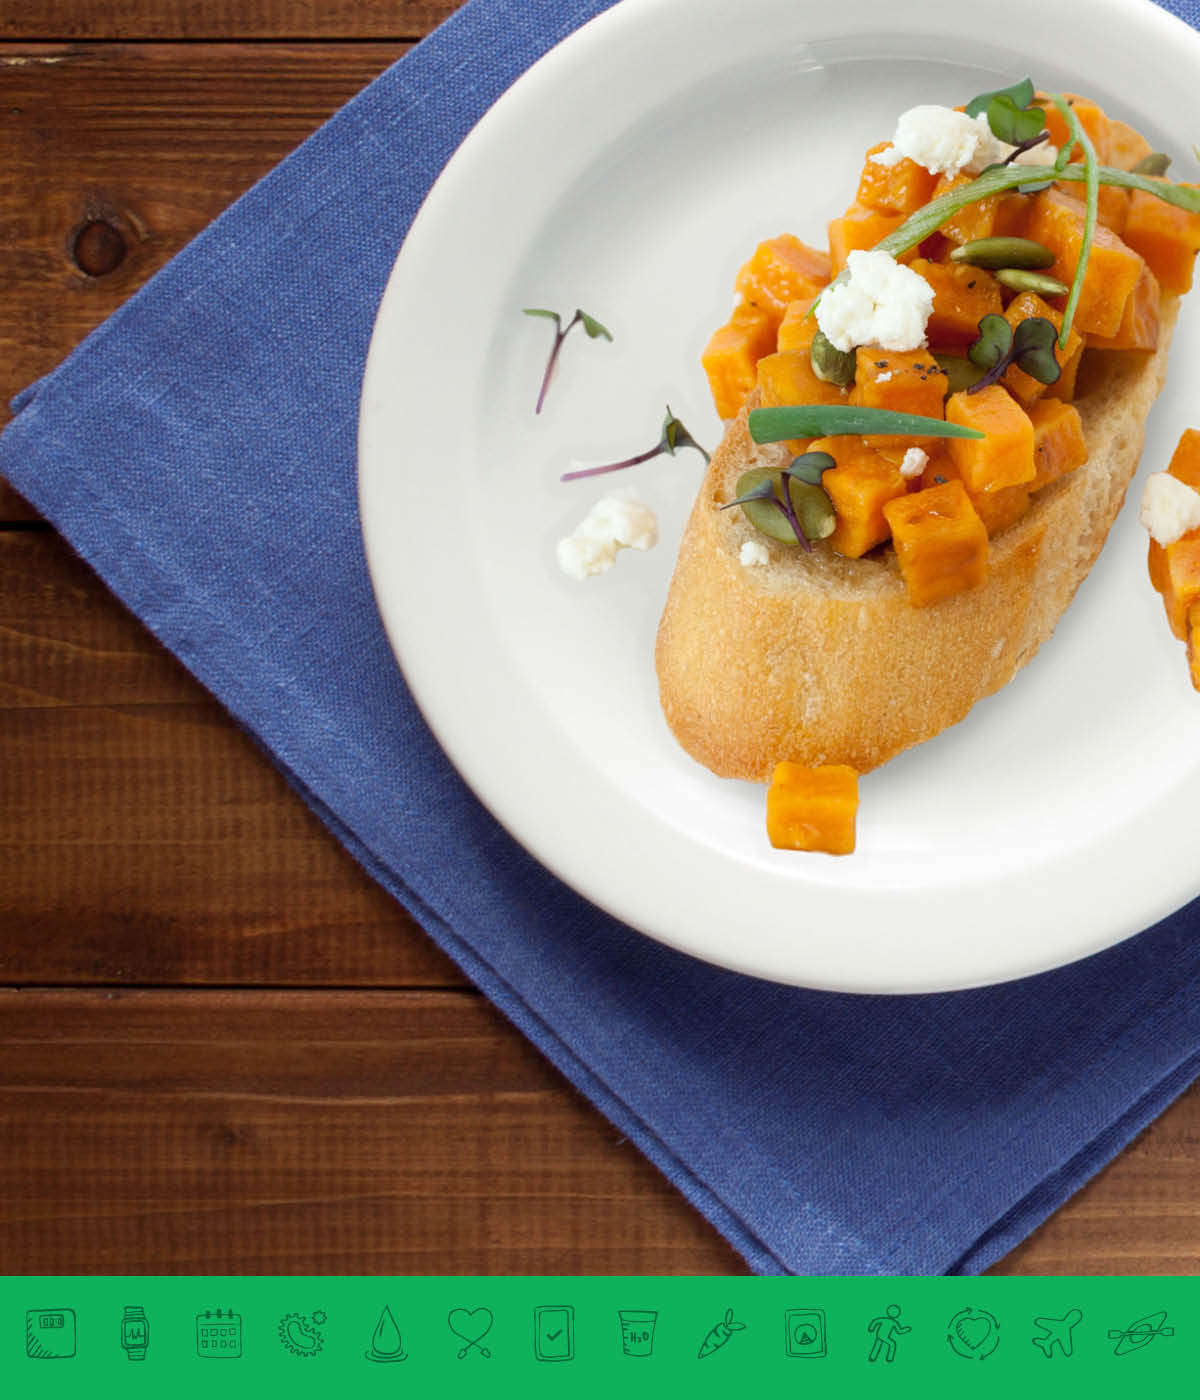 MSPrebiotic® Sweet Potato Feta Harvest Bruschetta